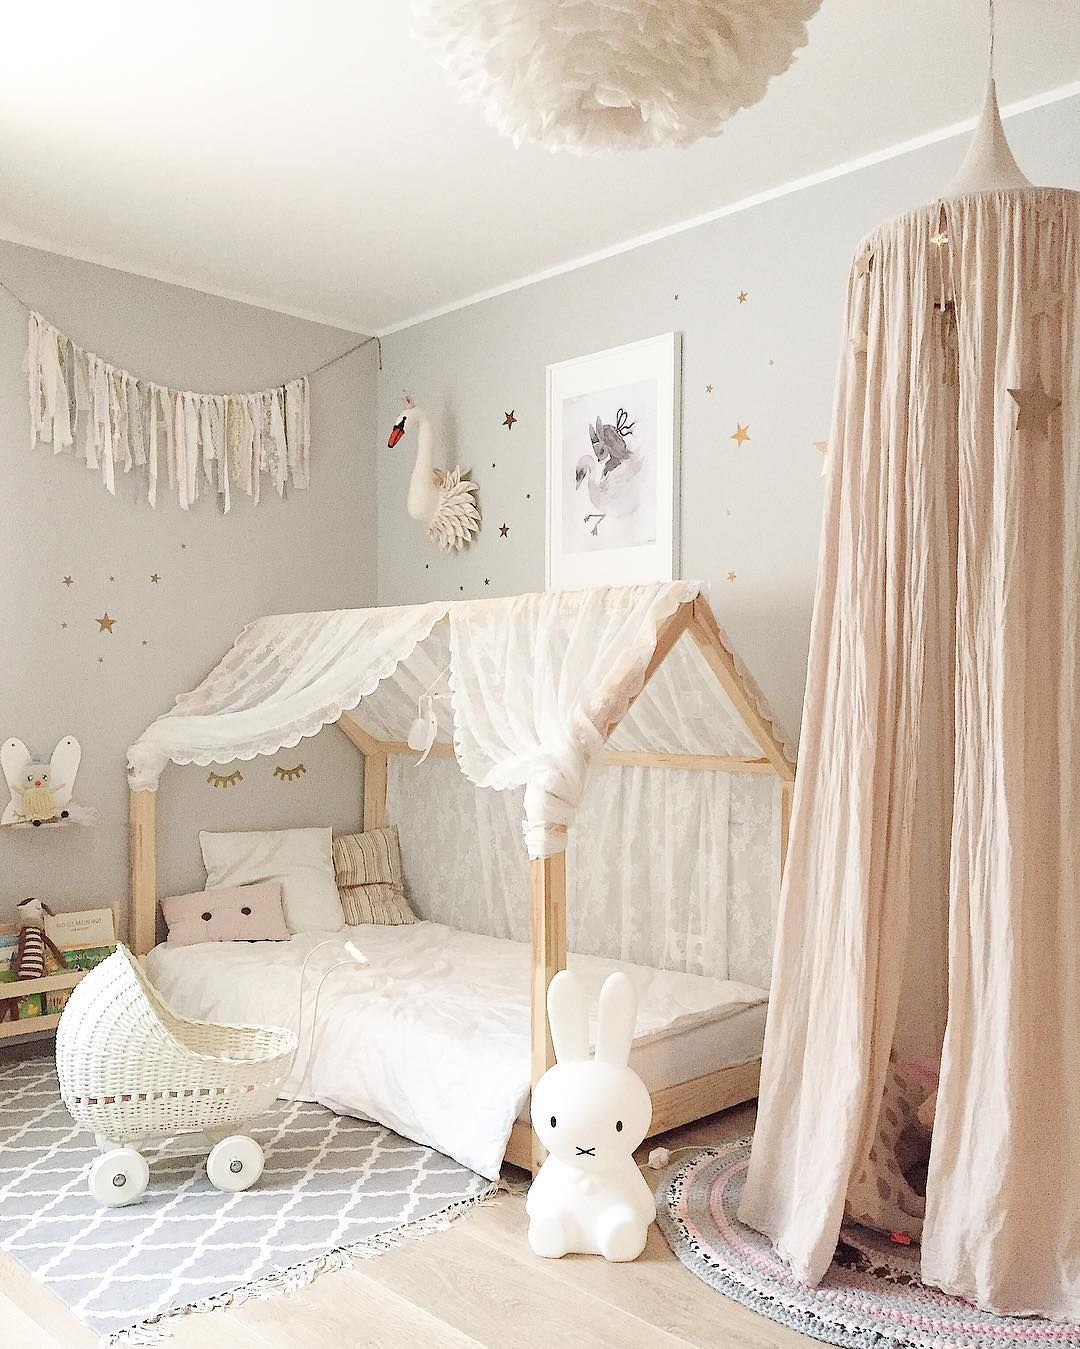 Chambre Bébé Fille Déco post3elfenkinder on instagram | vibbi | kids room